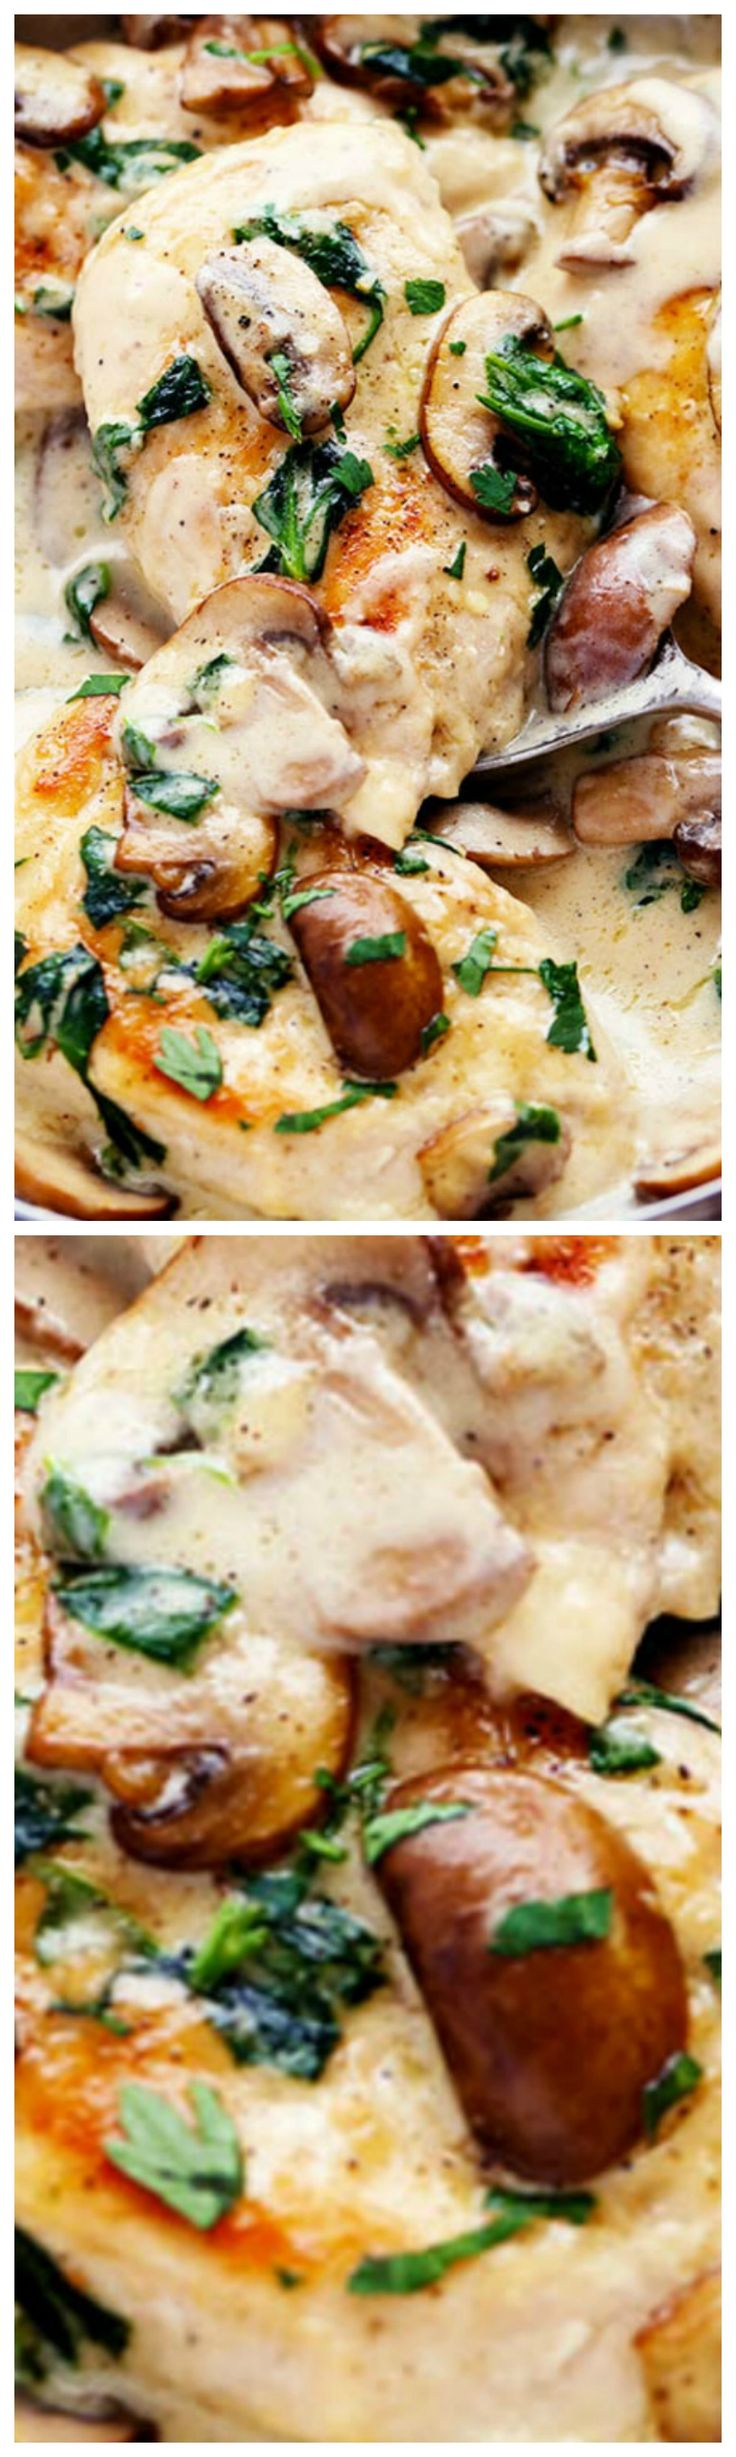 Creamy Parmesan Garlic Mushroom Chicken ~ It is ready in just 30 minutes and the parmesan garlic sauce will wow the entire family!